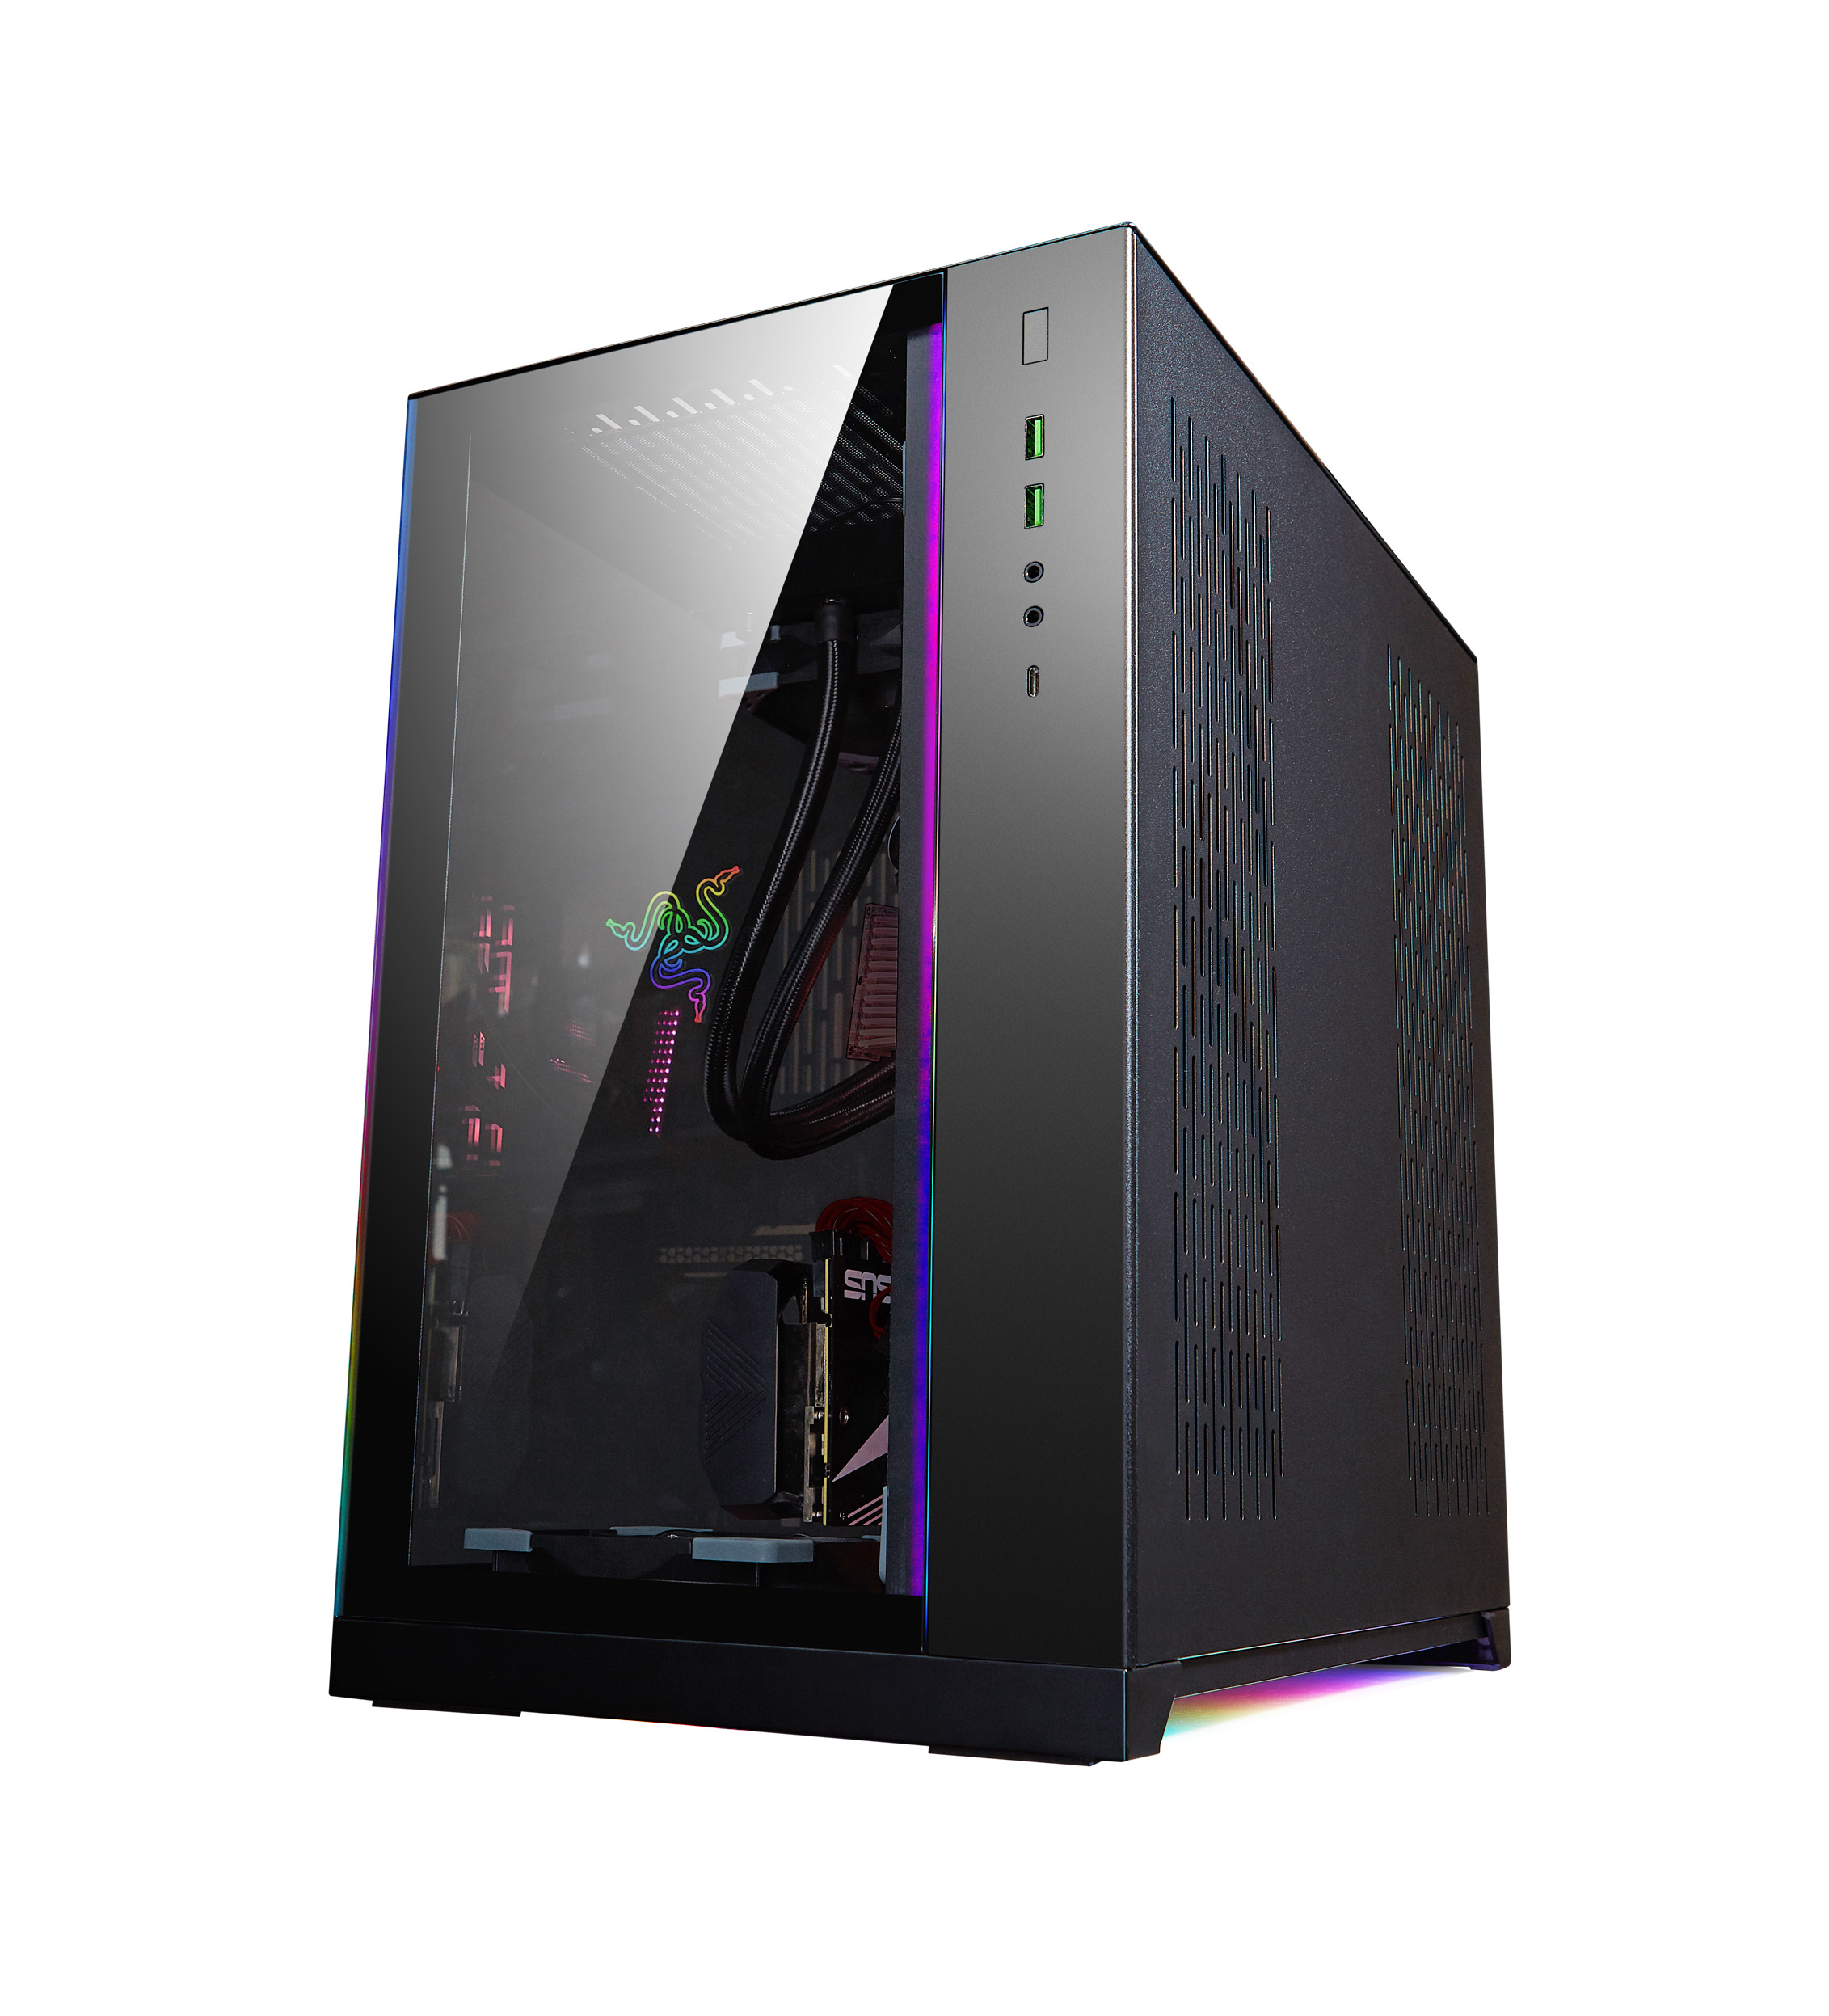 O11Razer 1343 - LIANLI PC-O11 News